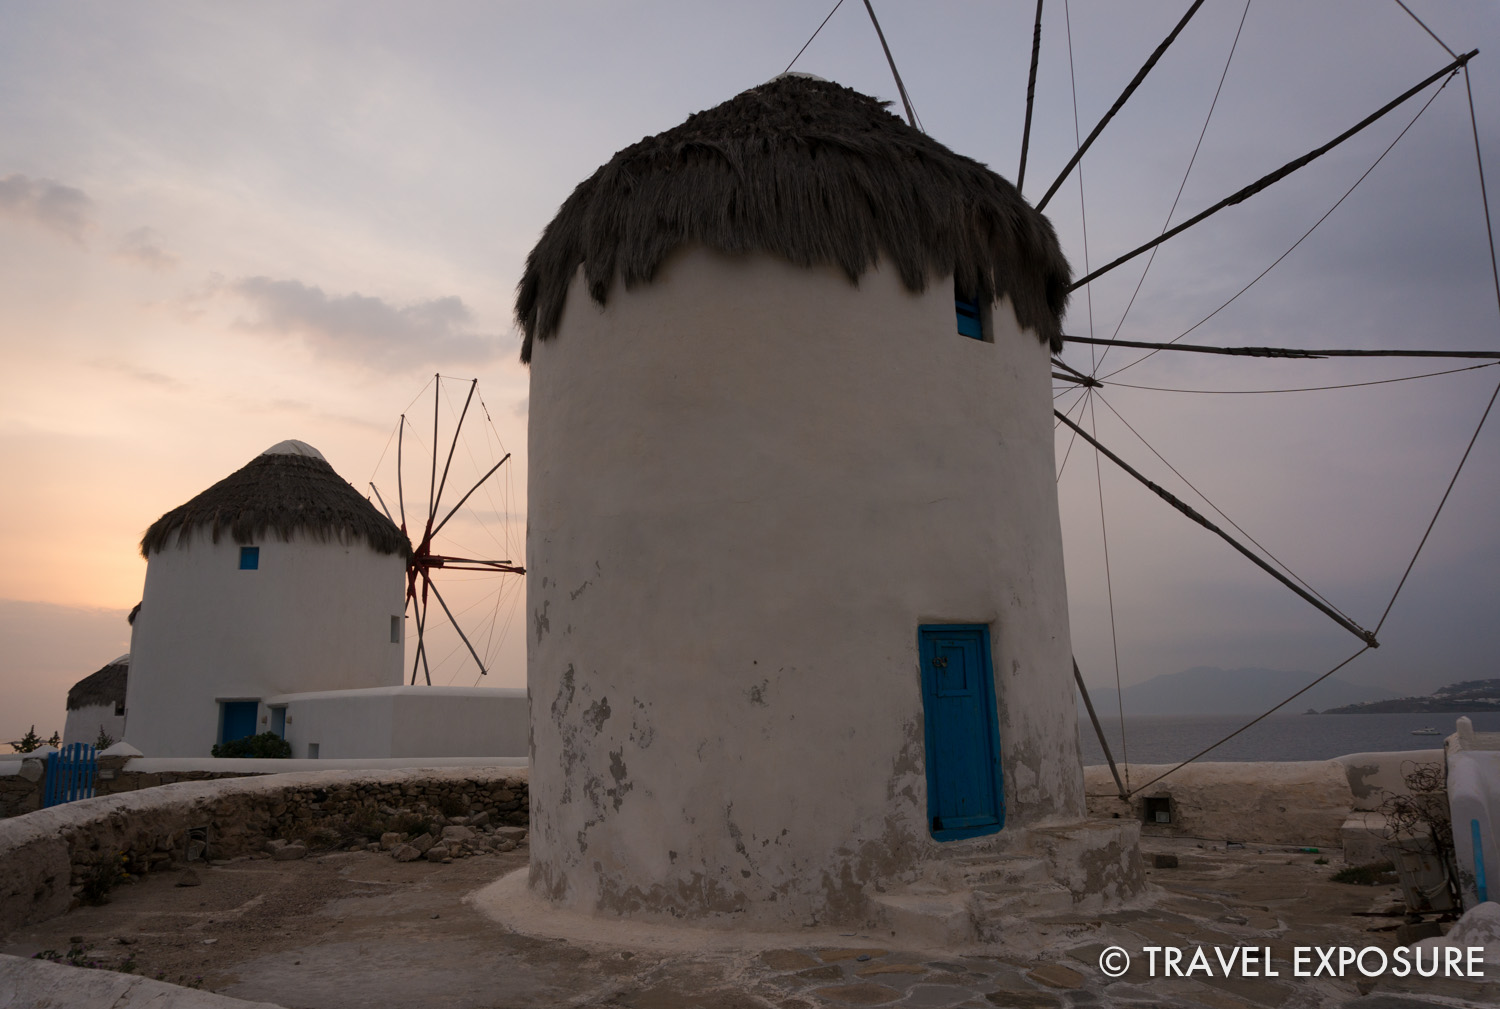 WEEK OF APRIL 7 Sixteenth century windmills, once used to grind wheat, sit on a hilltop in Mykonos, Greece.